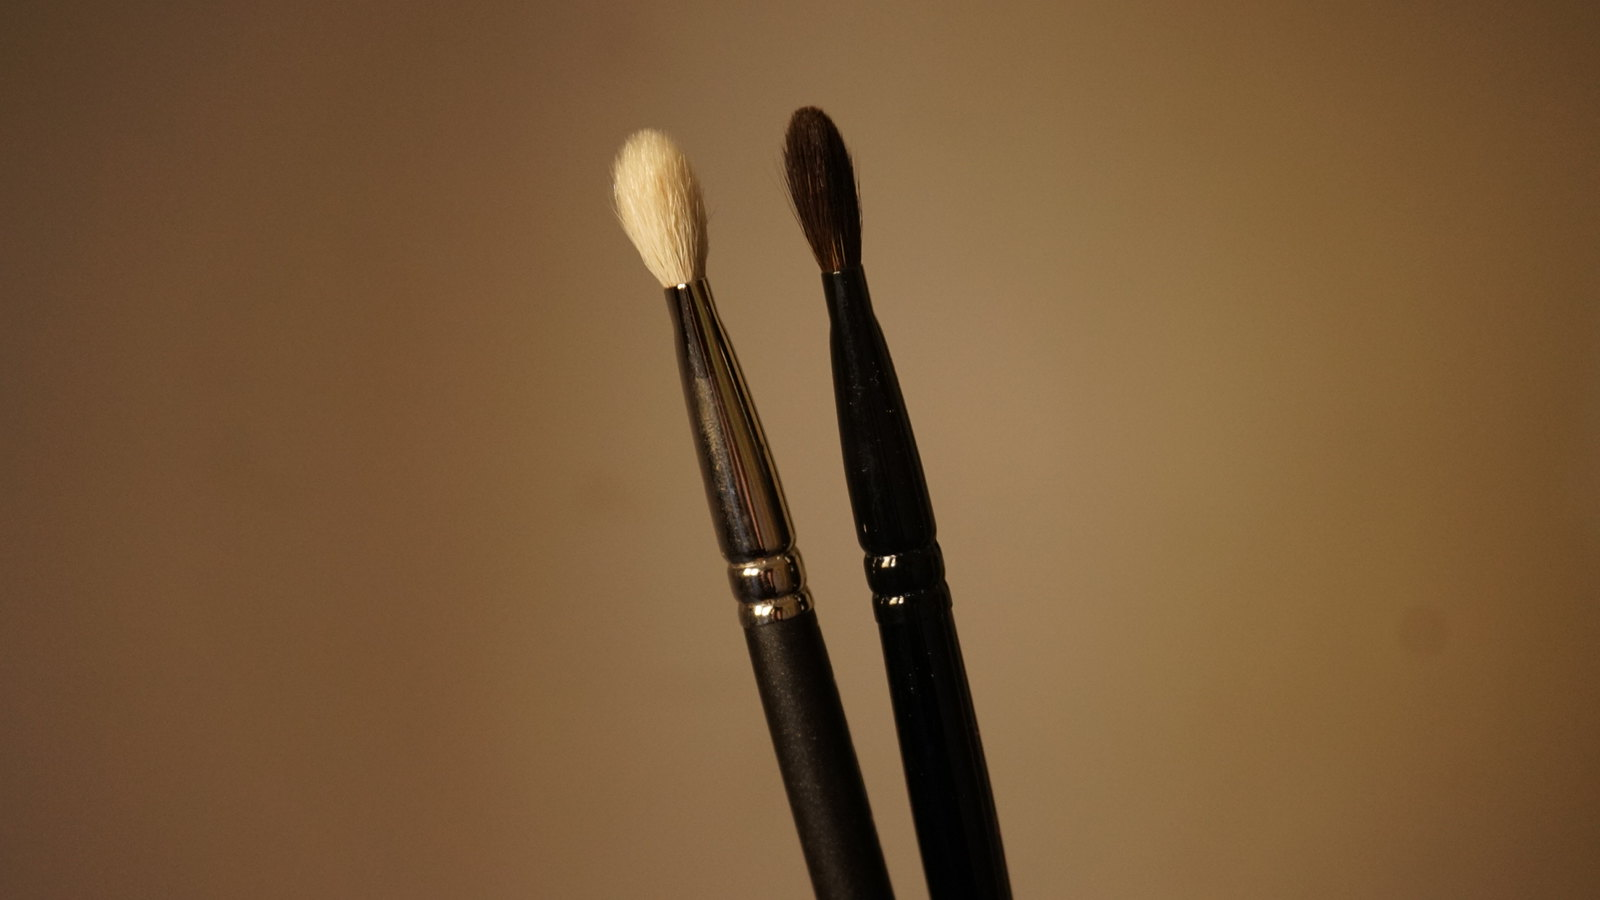 mac 217 brush vs wayne goss brush 06 review girlandvanity.com